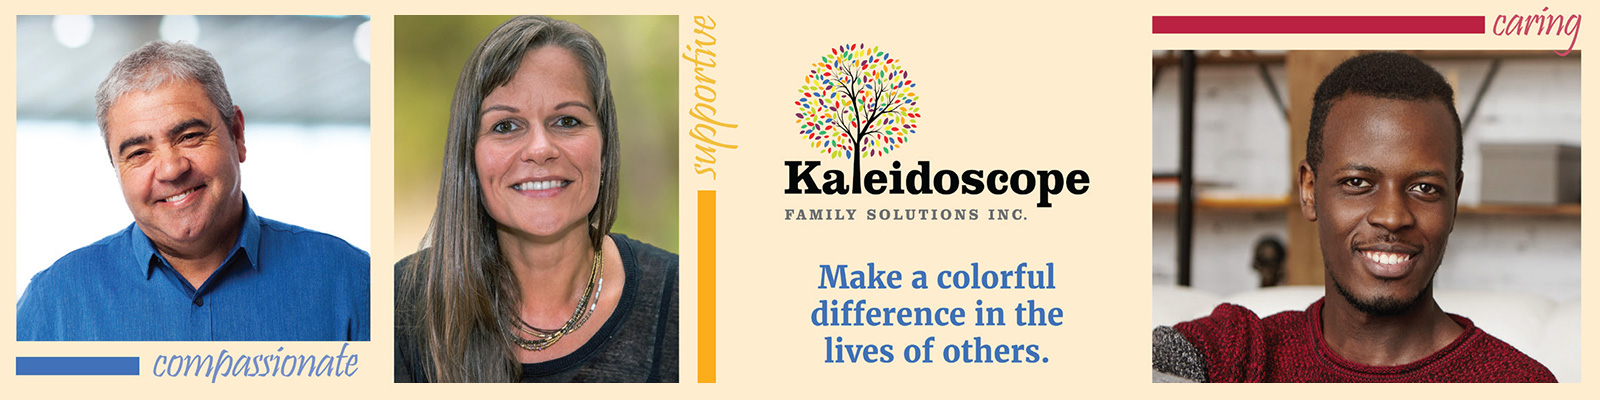 Kaleidoscope Family Solutions Inc - Direct Support Professional (DSP) banner image